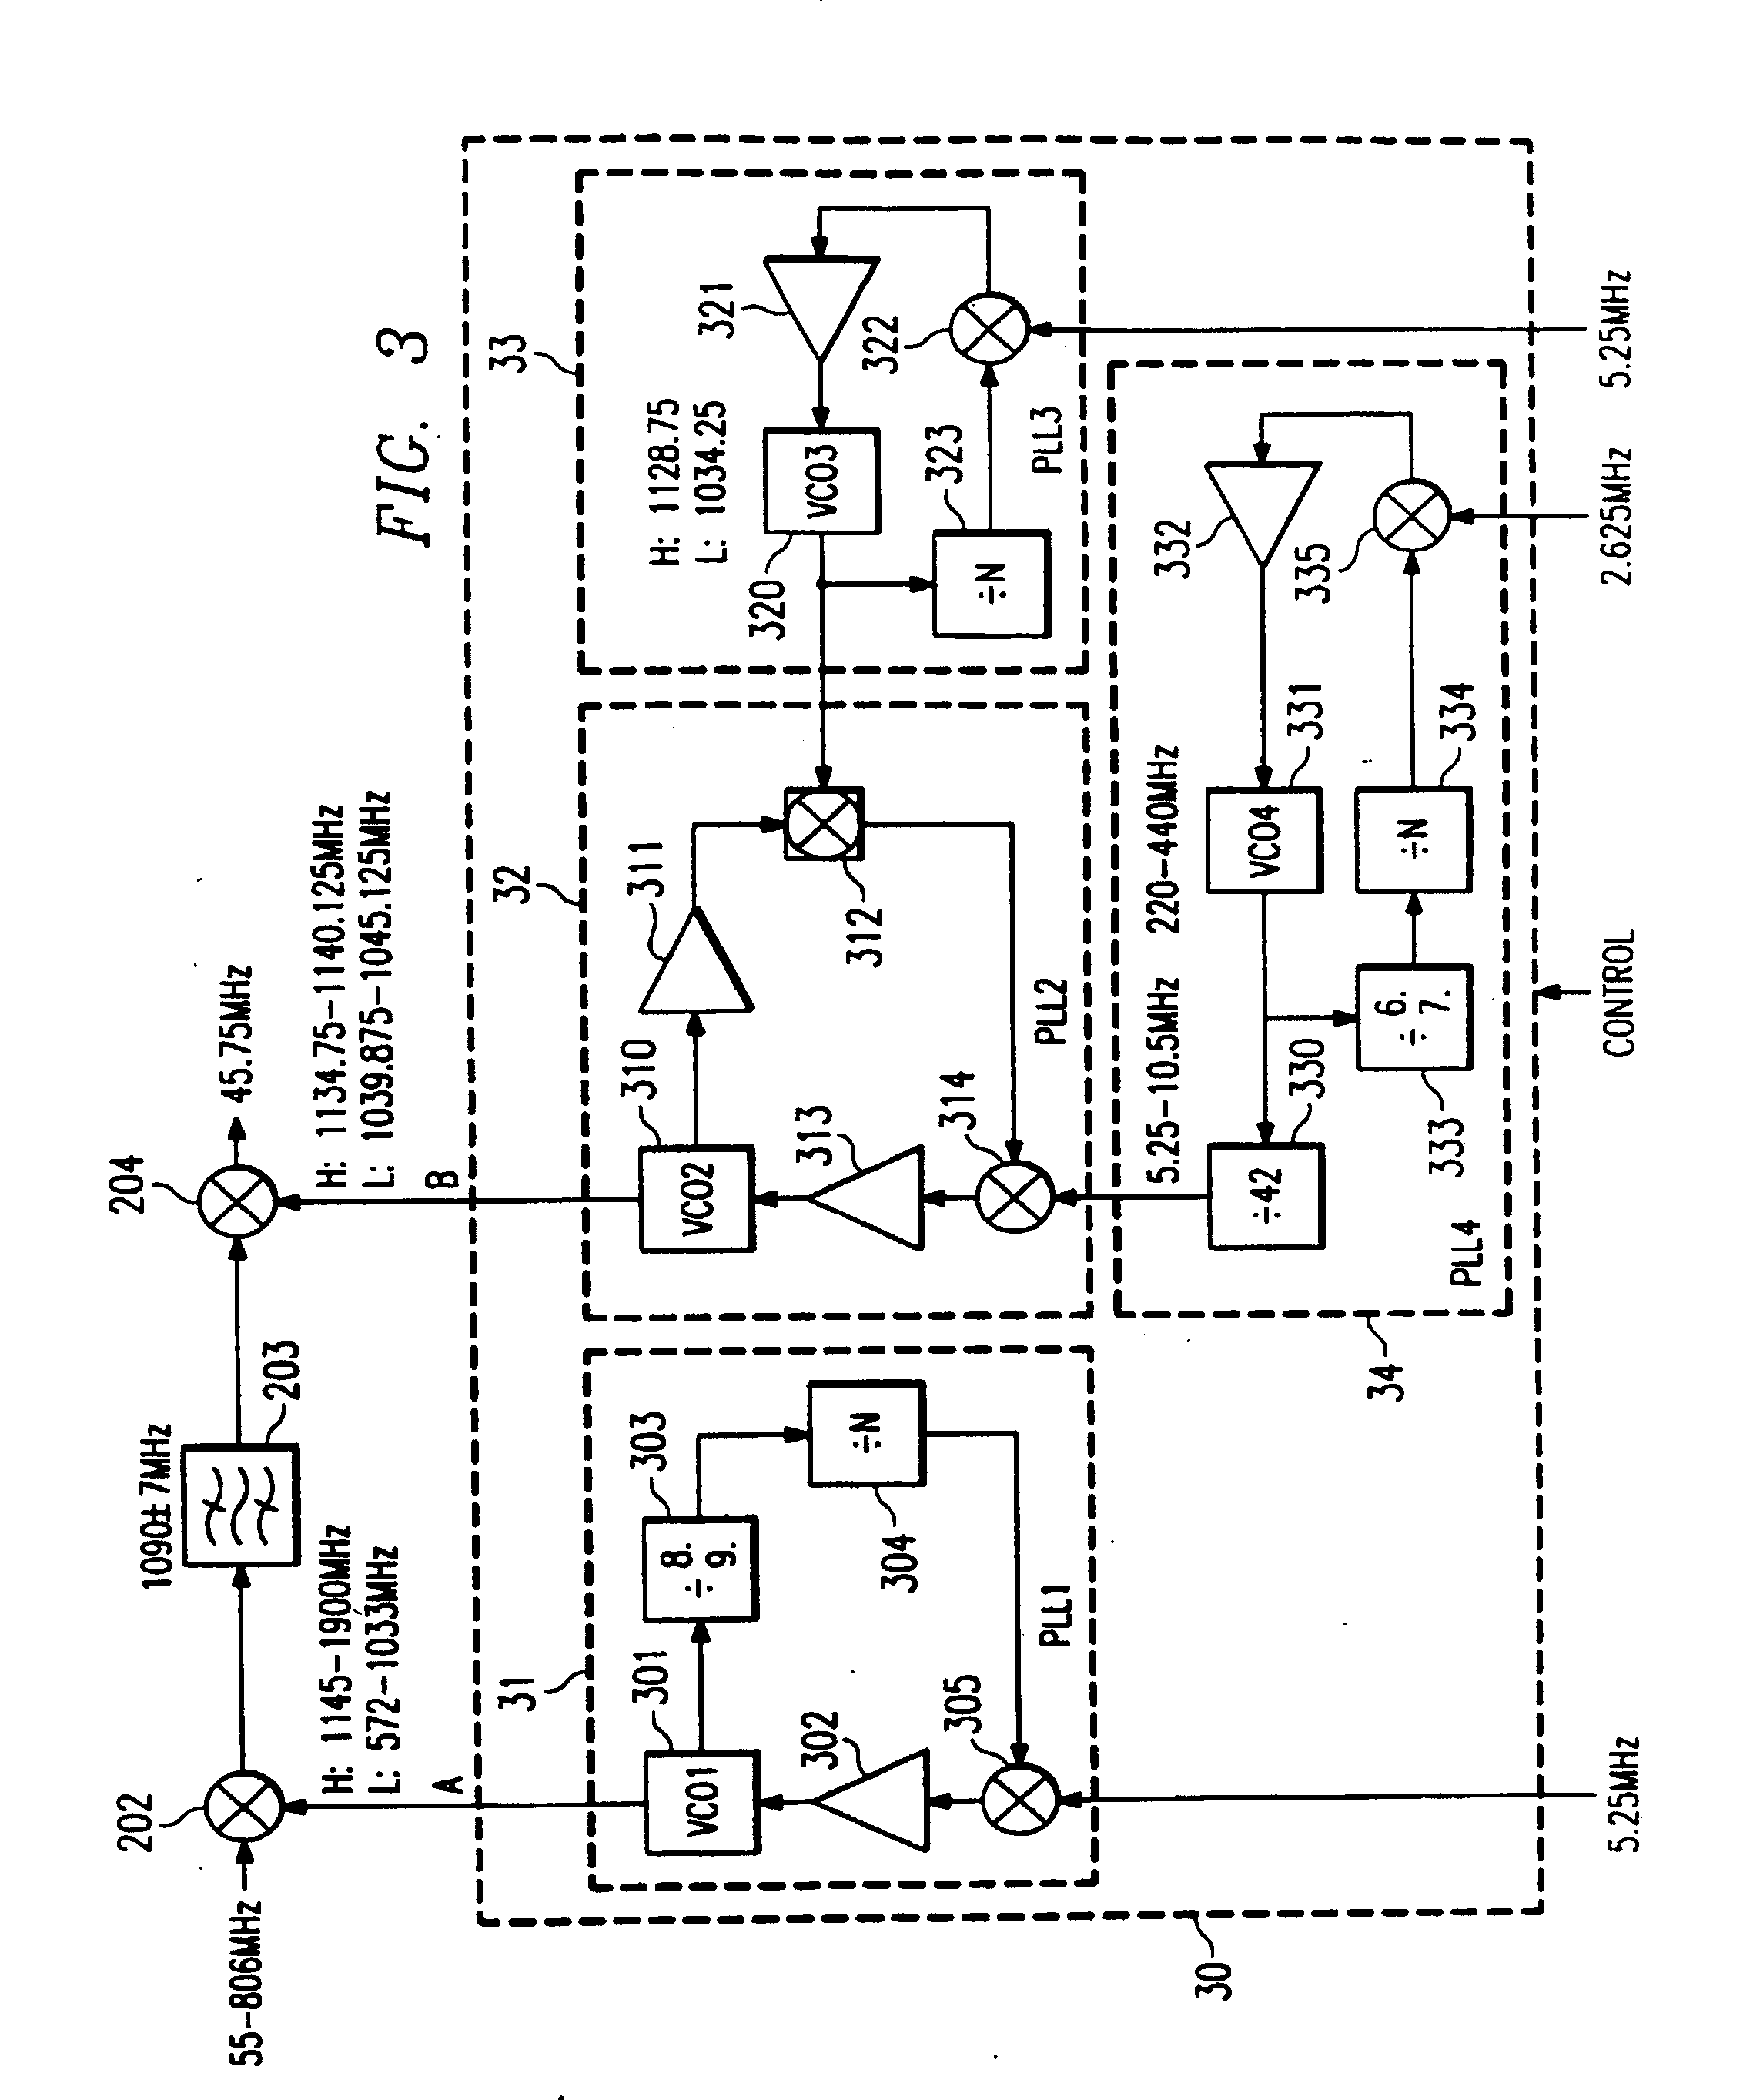 Patent Us20090219451 Broadband Integrated Television Tuner Onetube Transmitter Schematic Diagrams And Circuit Descriptions Drawing